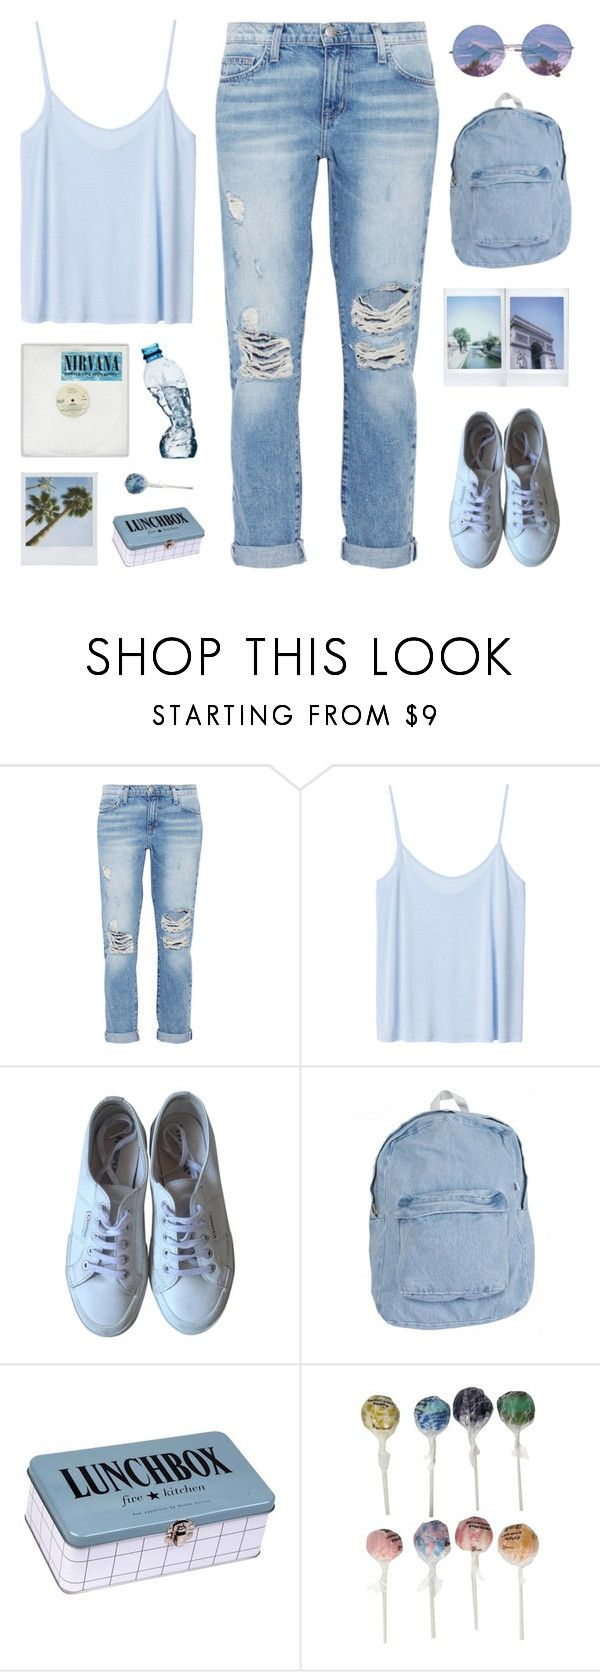 """""""// u n t i t l e d · #859 //"""" by theonlynewgirl ❤ liked on Polyvore featuring Current/Elliott, Monki, Superga, American Apparel, House Doctor, Original Gourmet Food Company and beoriginal"""